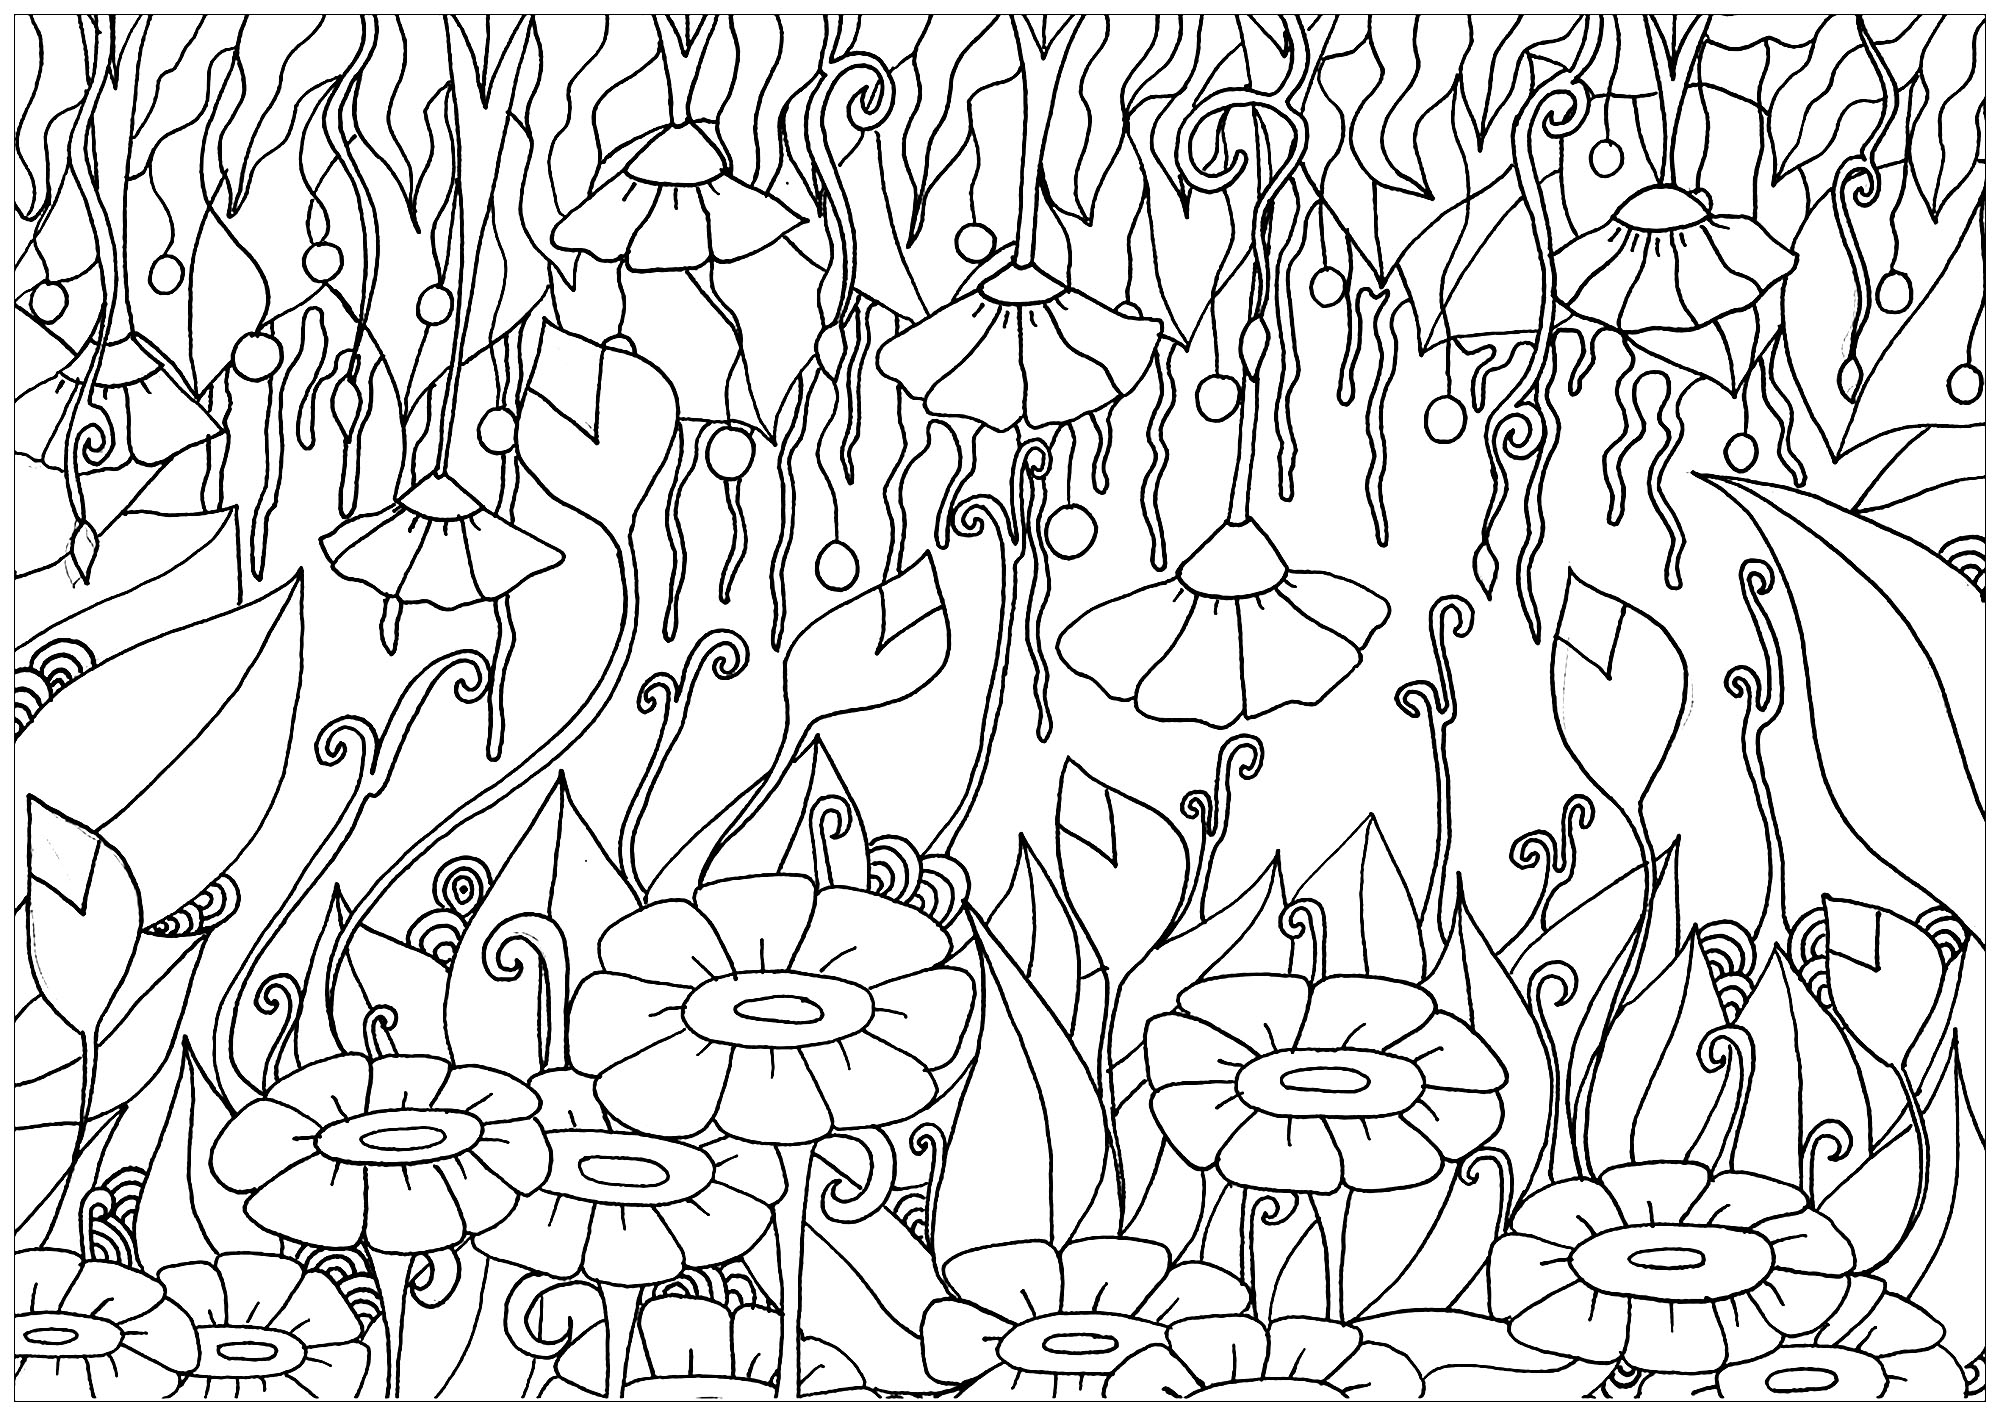 Free Flowers coloring page to print and color